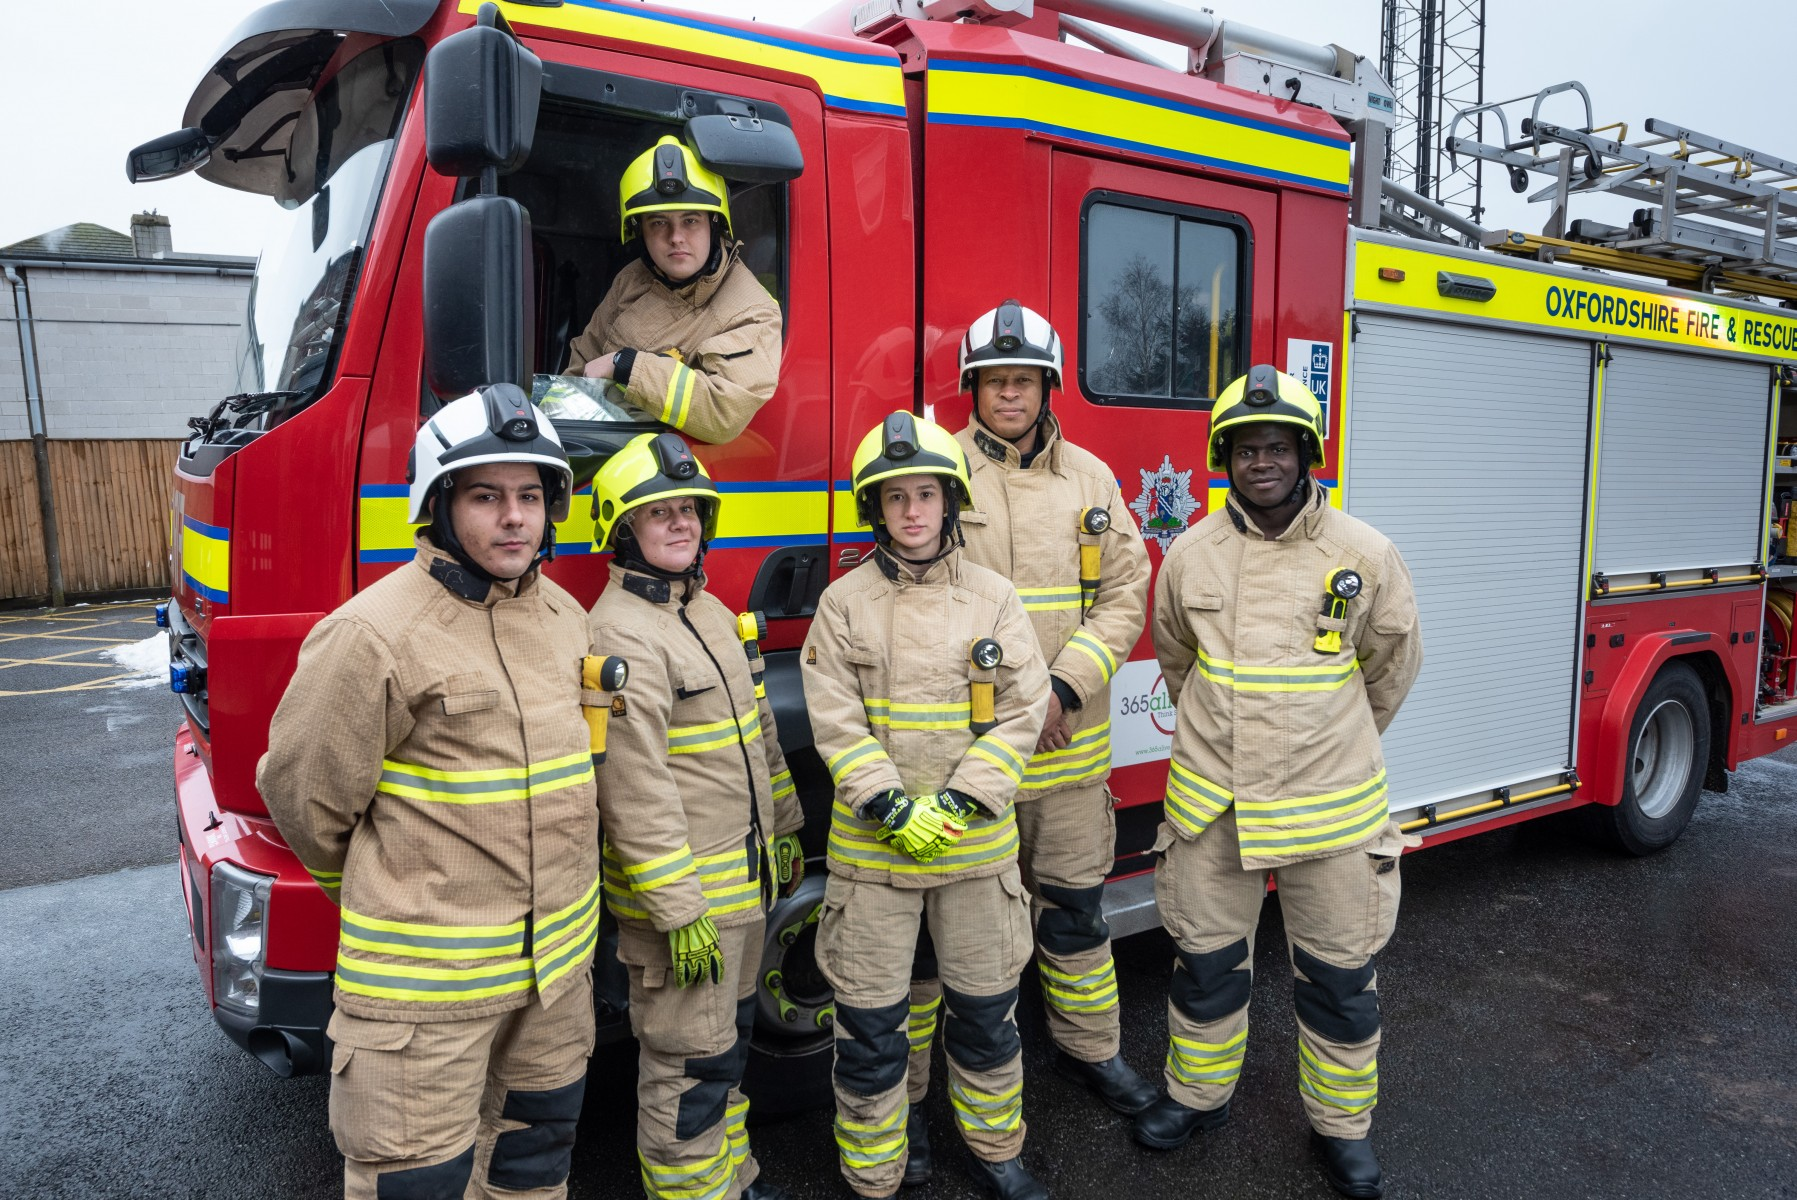 Image - Fire service - Thames Valley Partnership